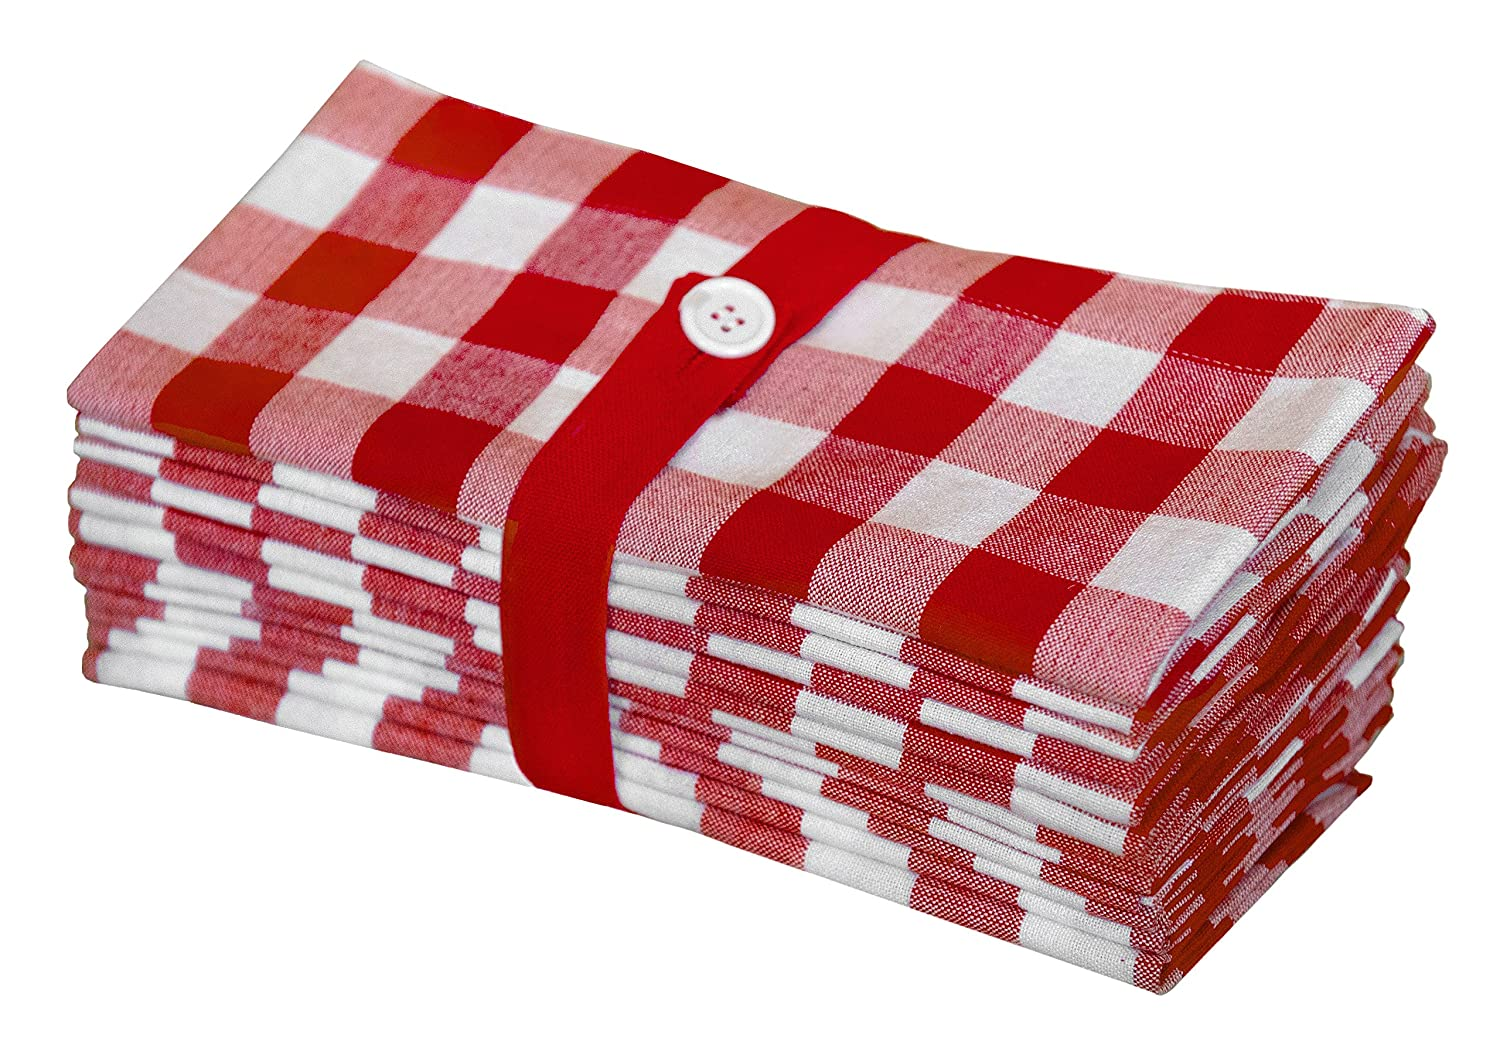 Christmas Tablescape Décor - Red gingham check cotton oversized dinner napkins - Set of 12